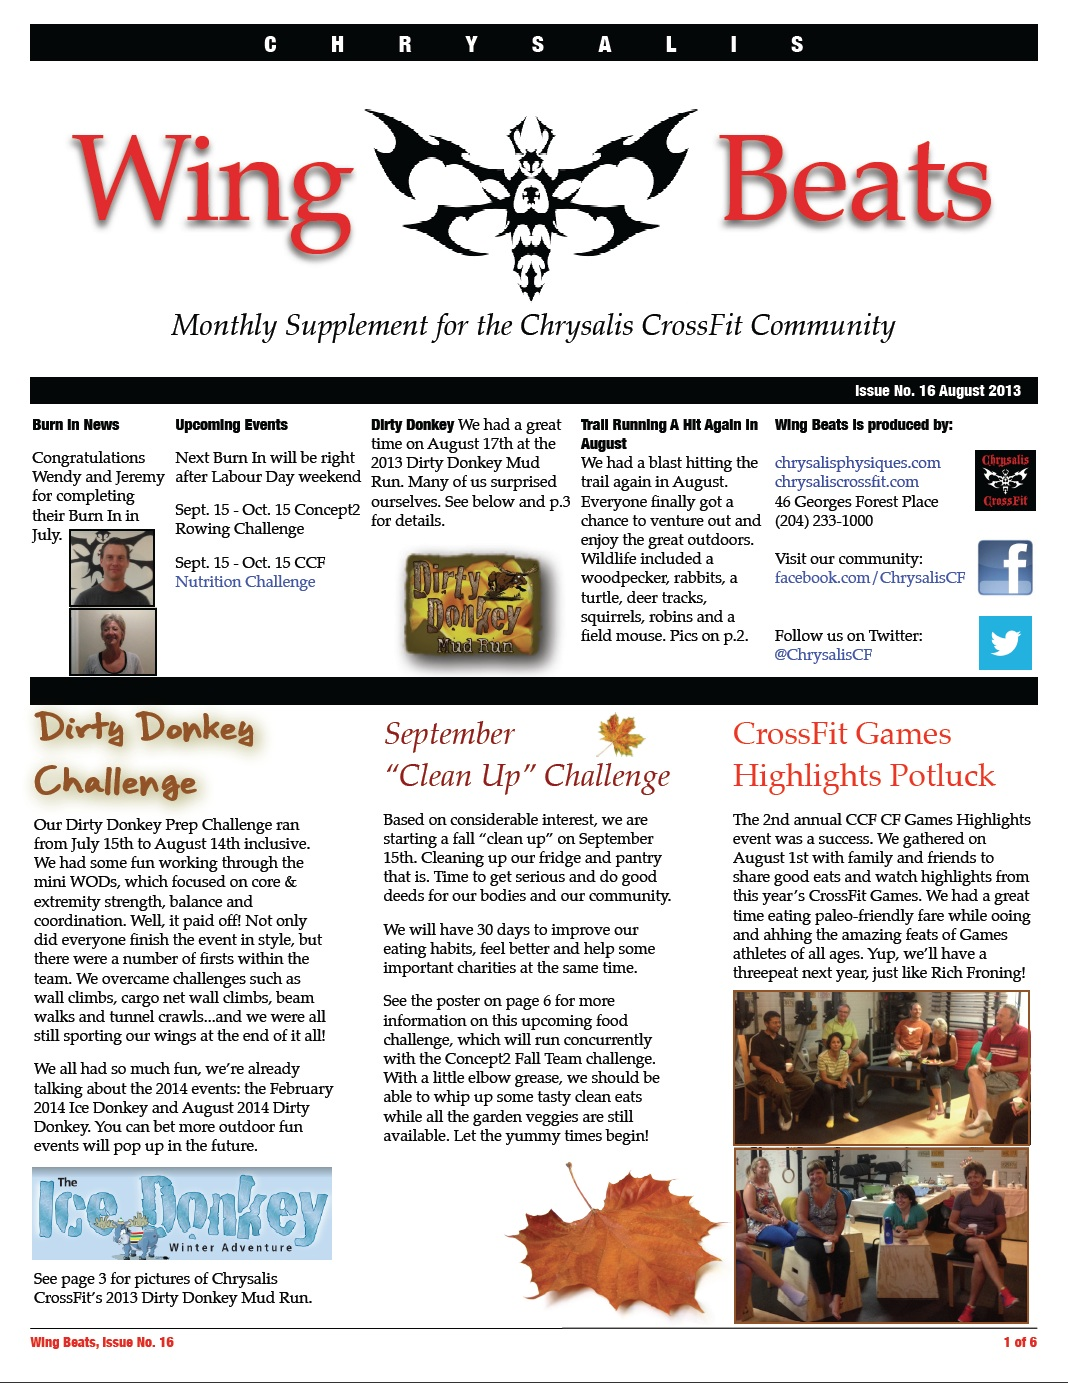 WingBeats Issue #16 - August 2013